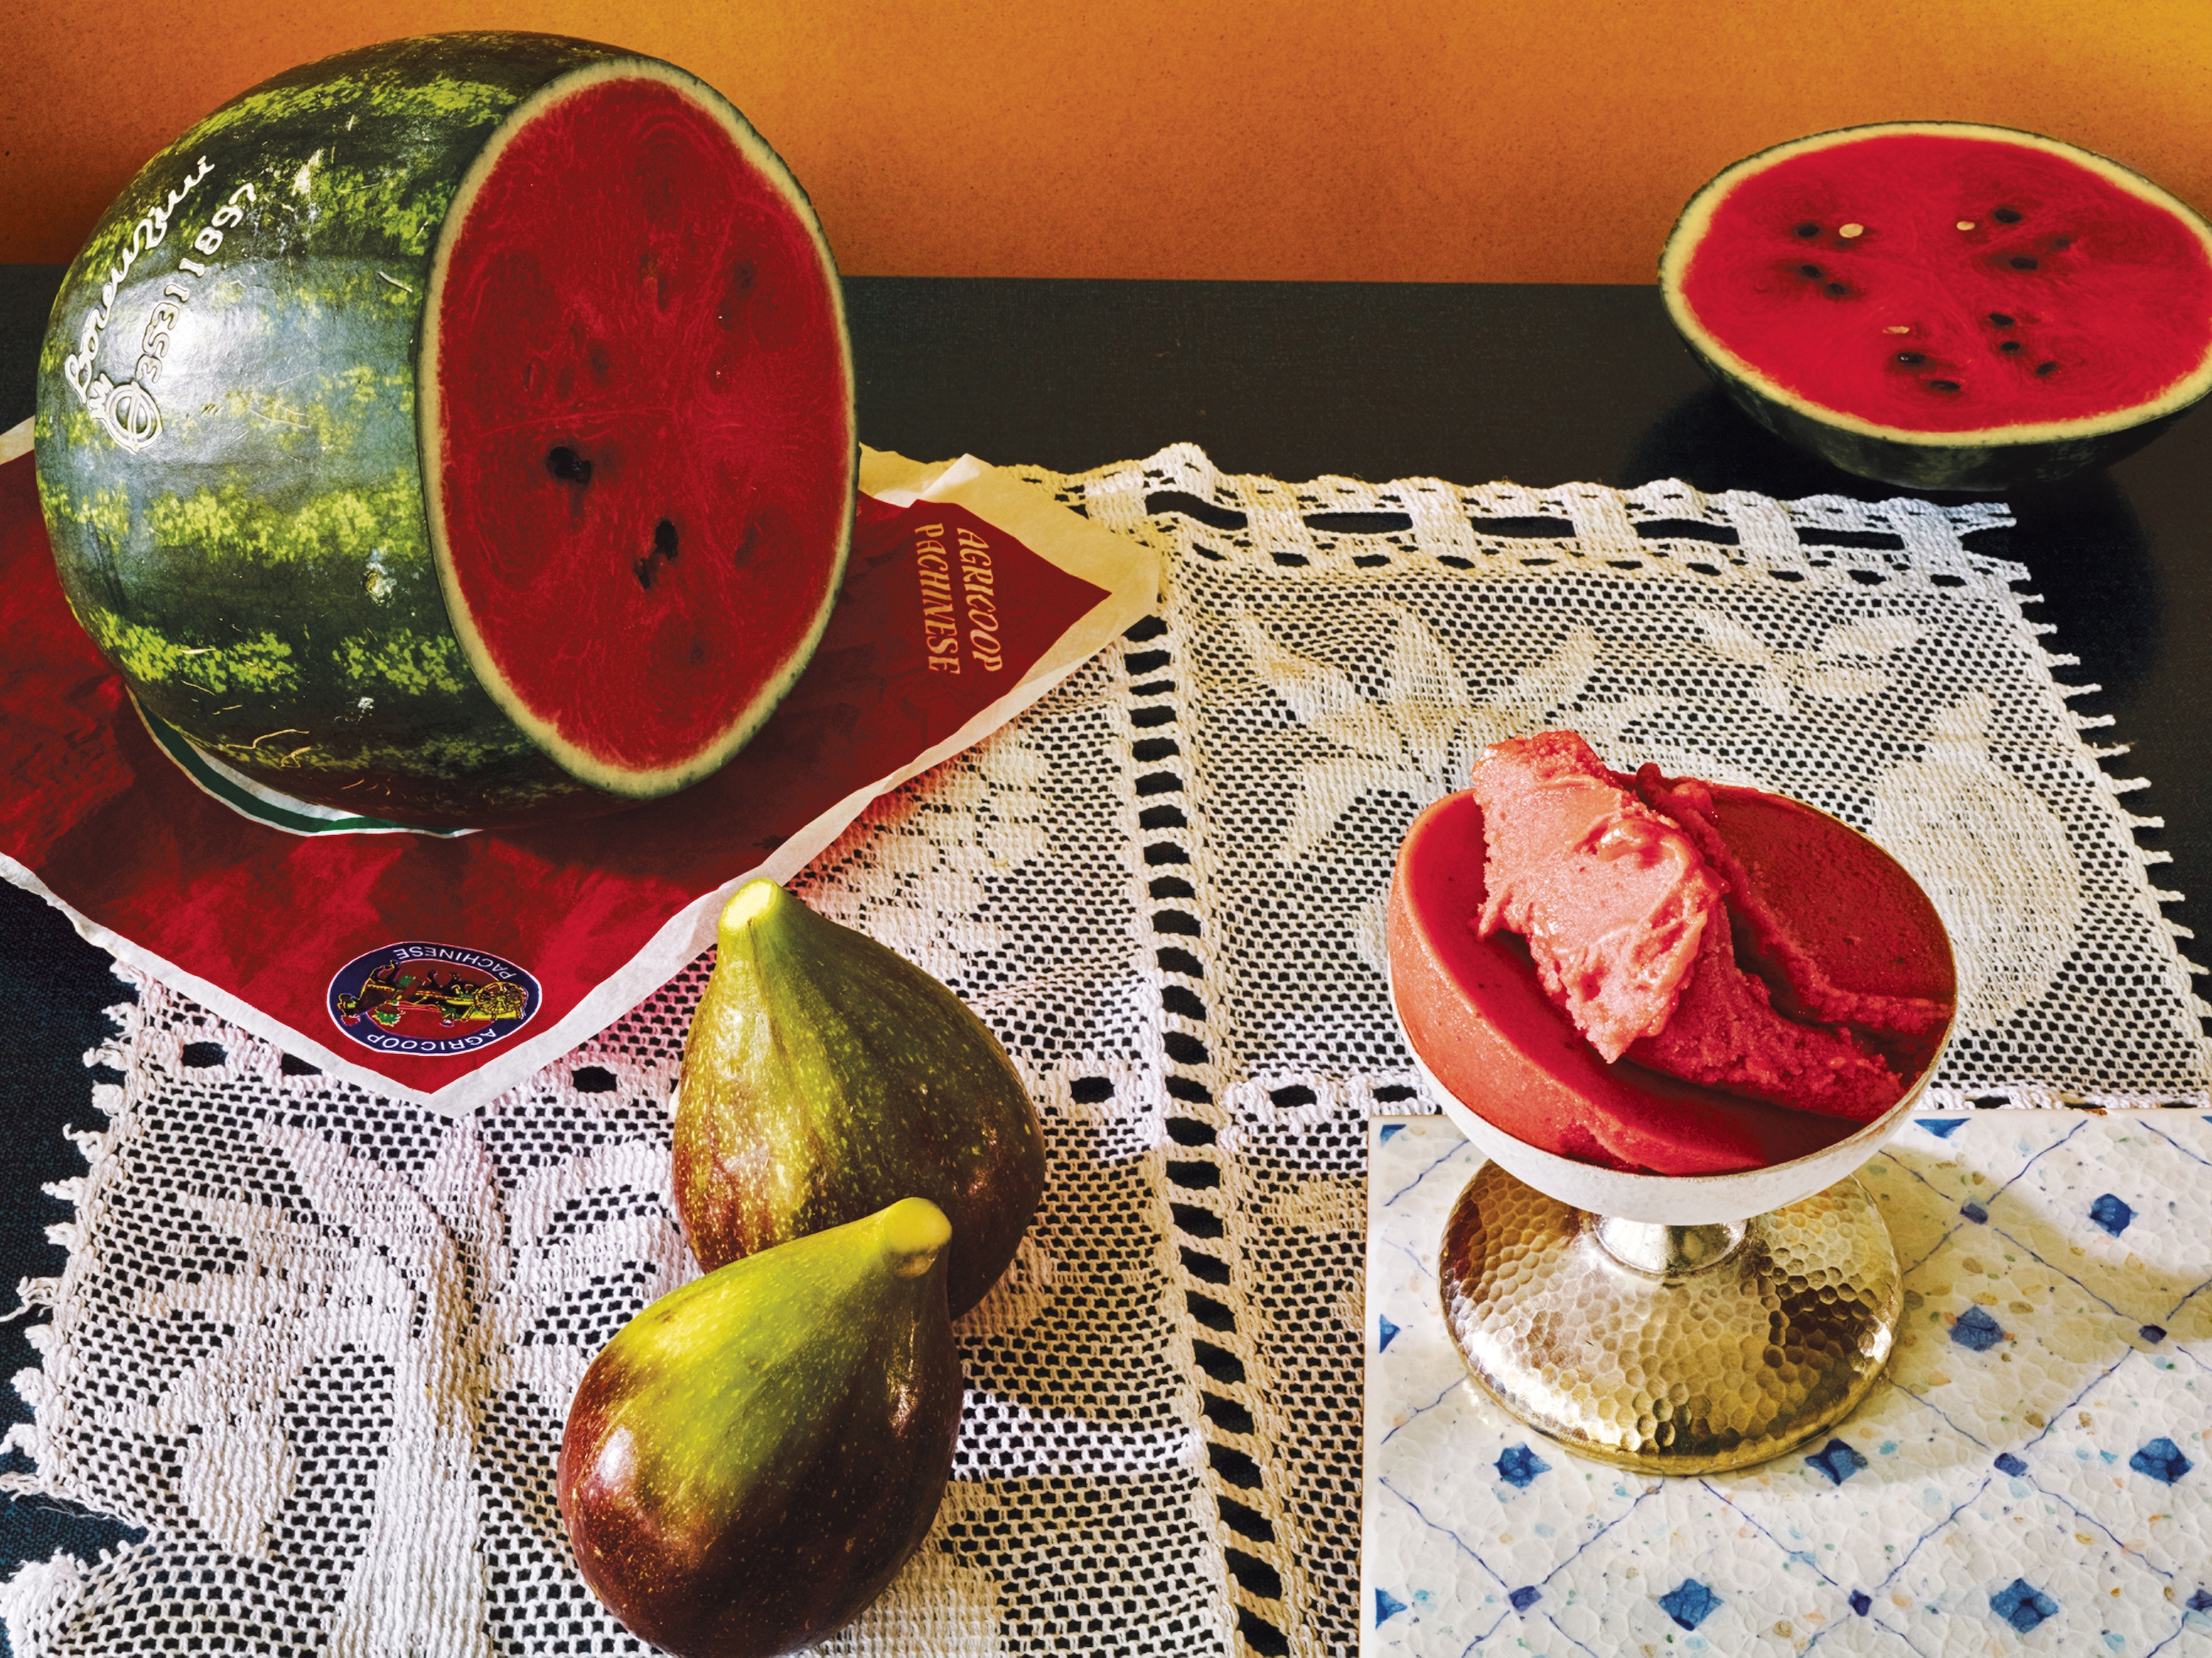 Wild fig and watermelon sorbet